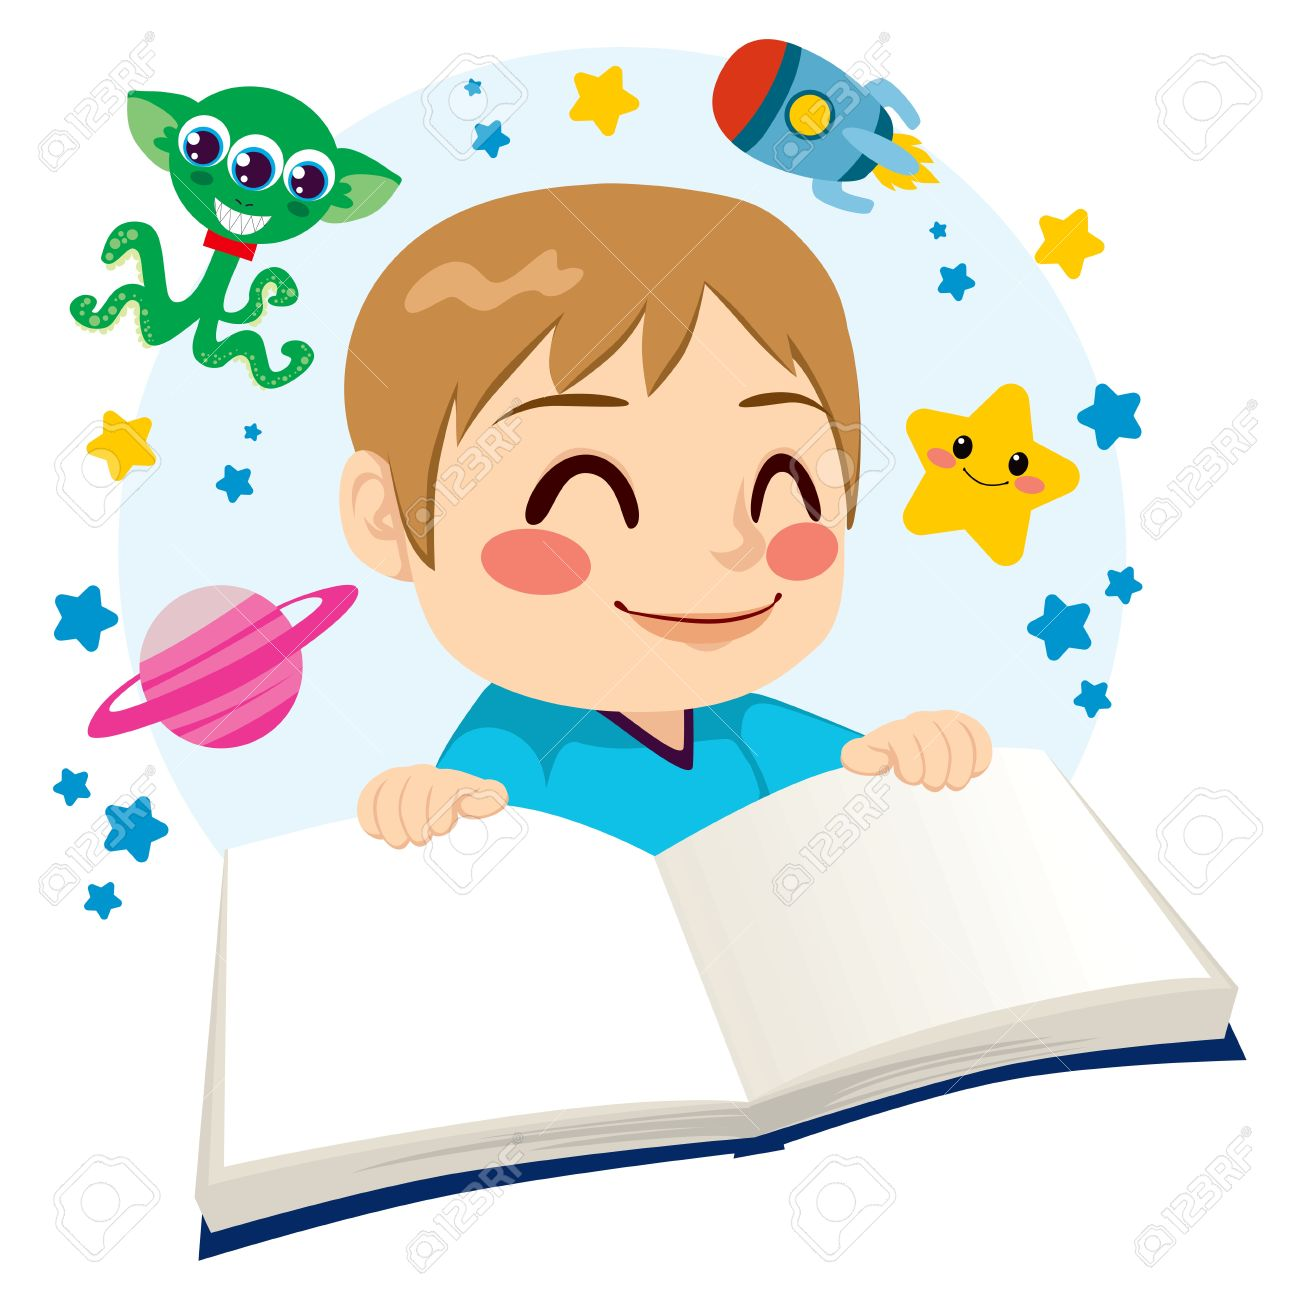 21888755-cute-little-boy-happy-reading-a-science-fiction-space-exploration-adventures-book.jpg